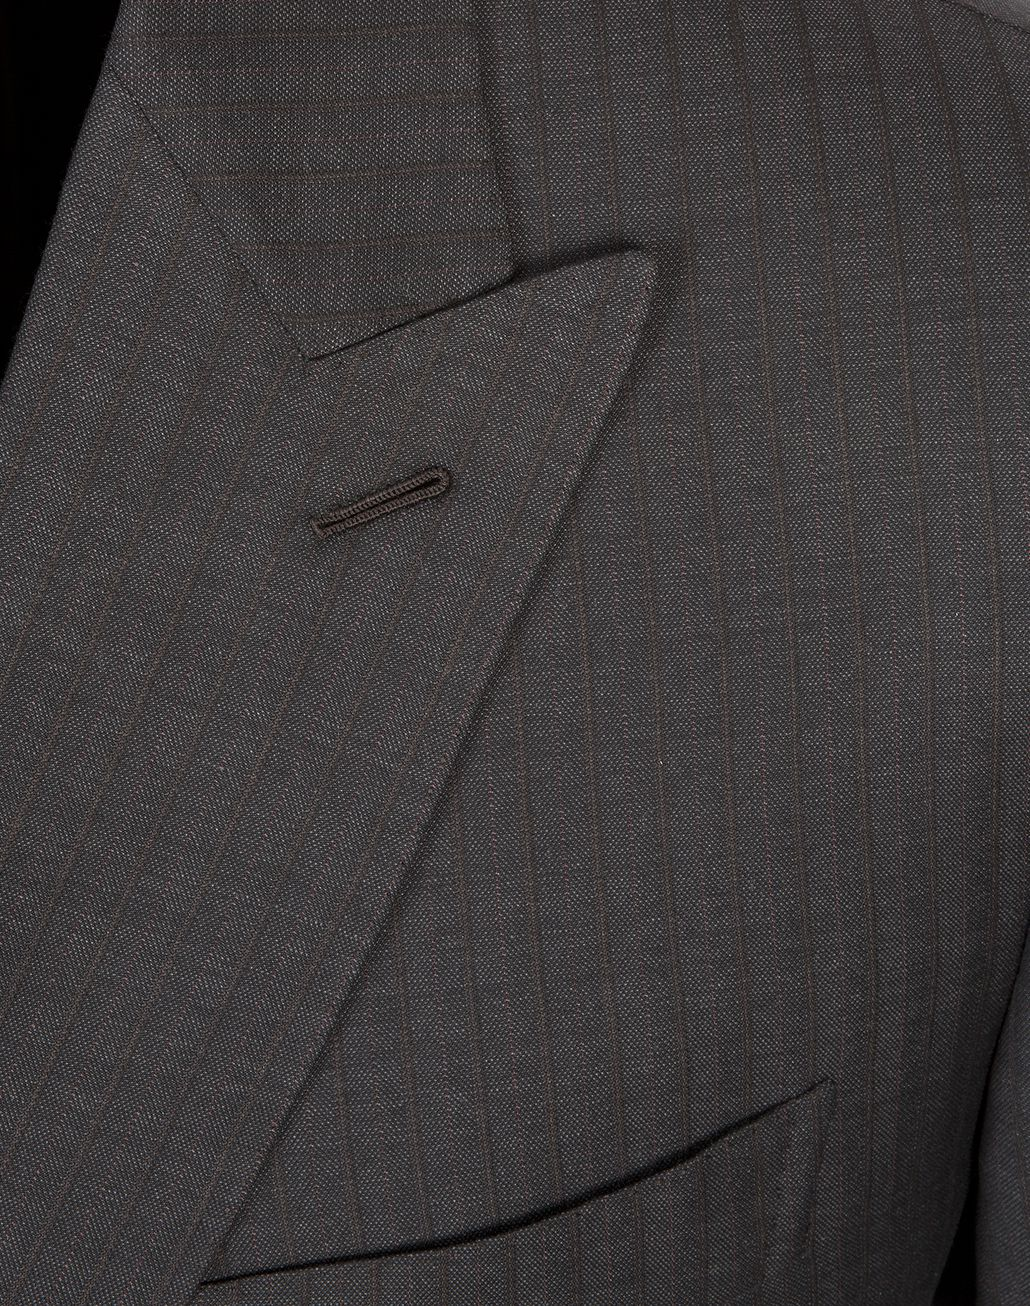 BRIONI Grey and Dark Brown Striped Madison Double Breasted Suit Suits & Jackets Man a